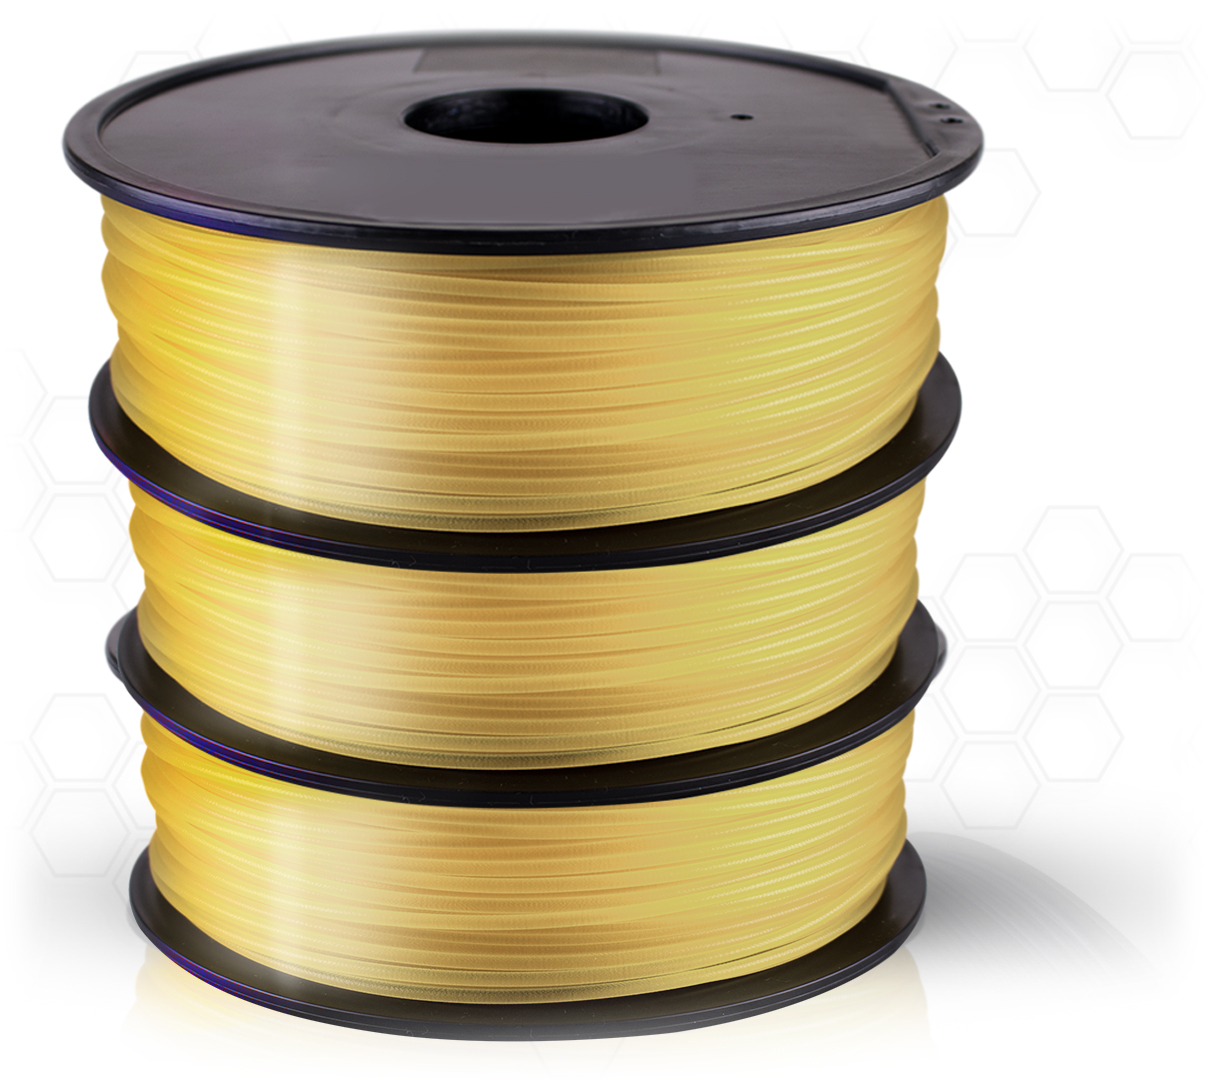 3D Printing Filament That Washes Away With Water